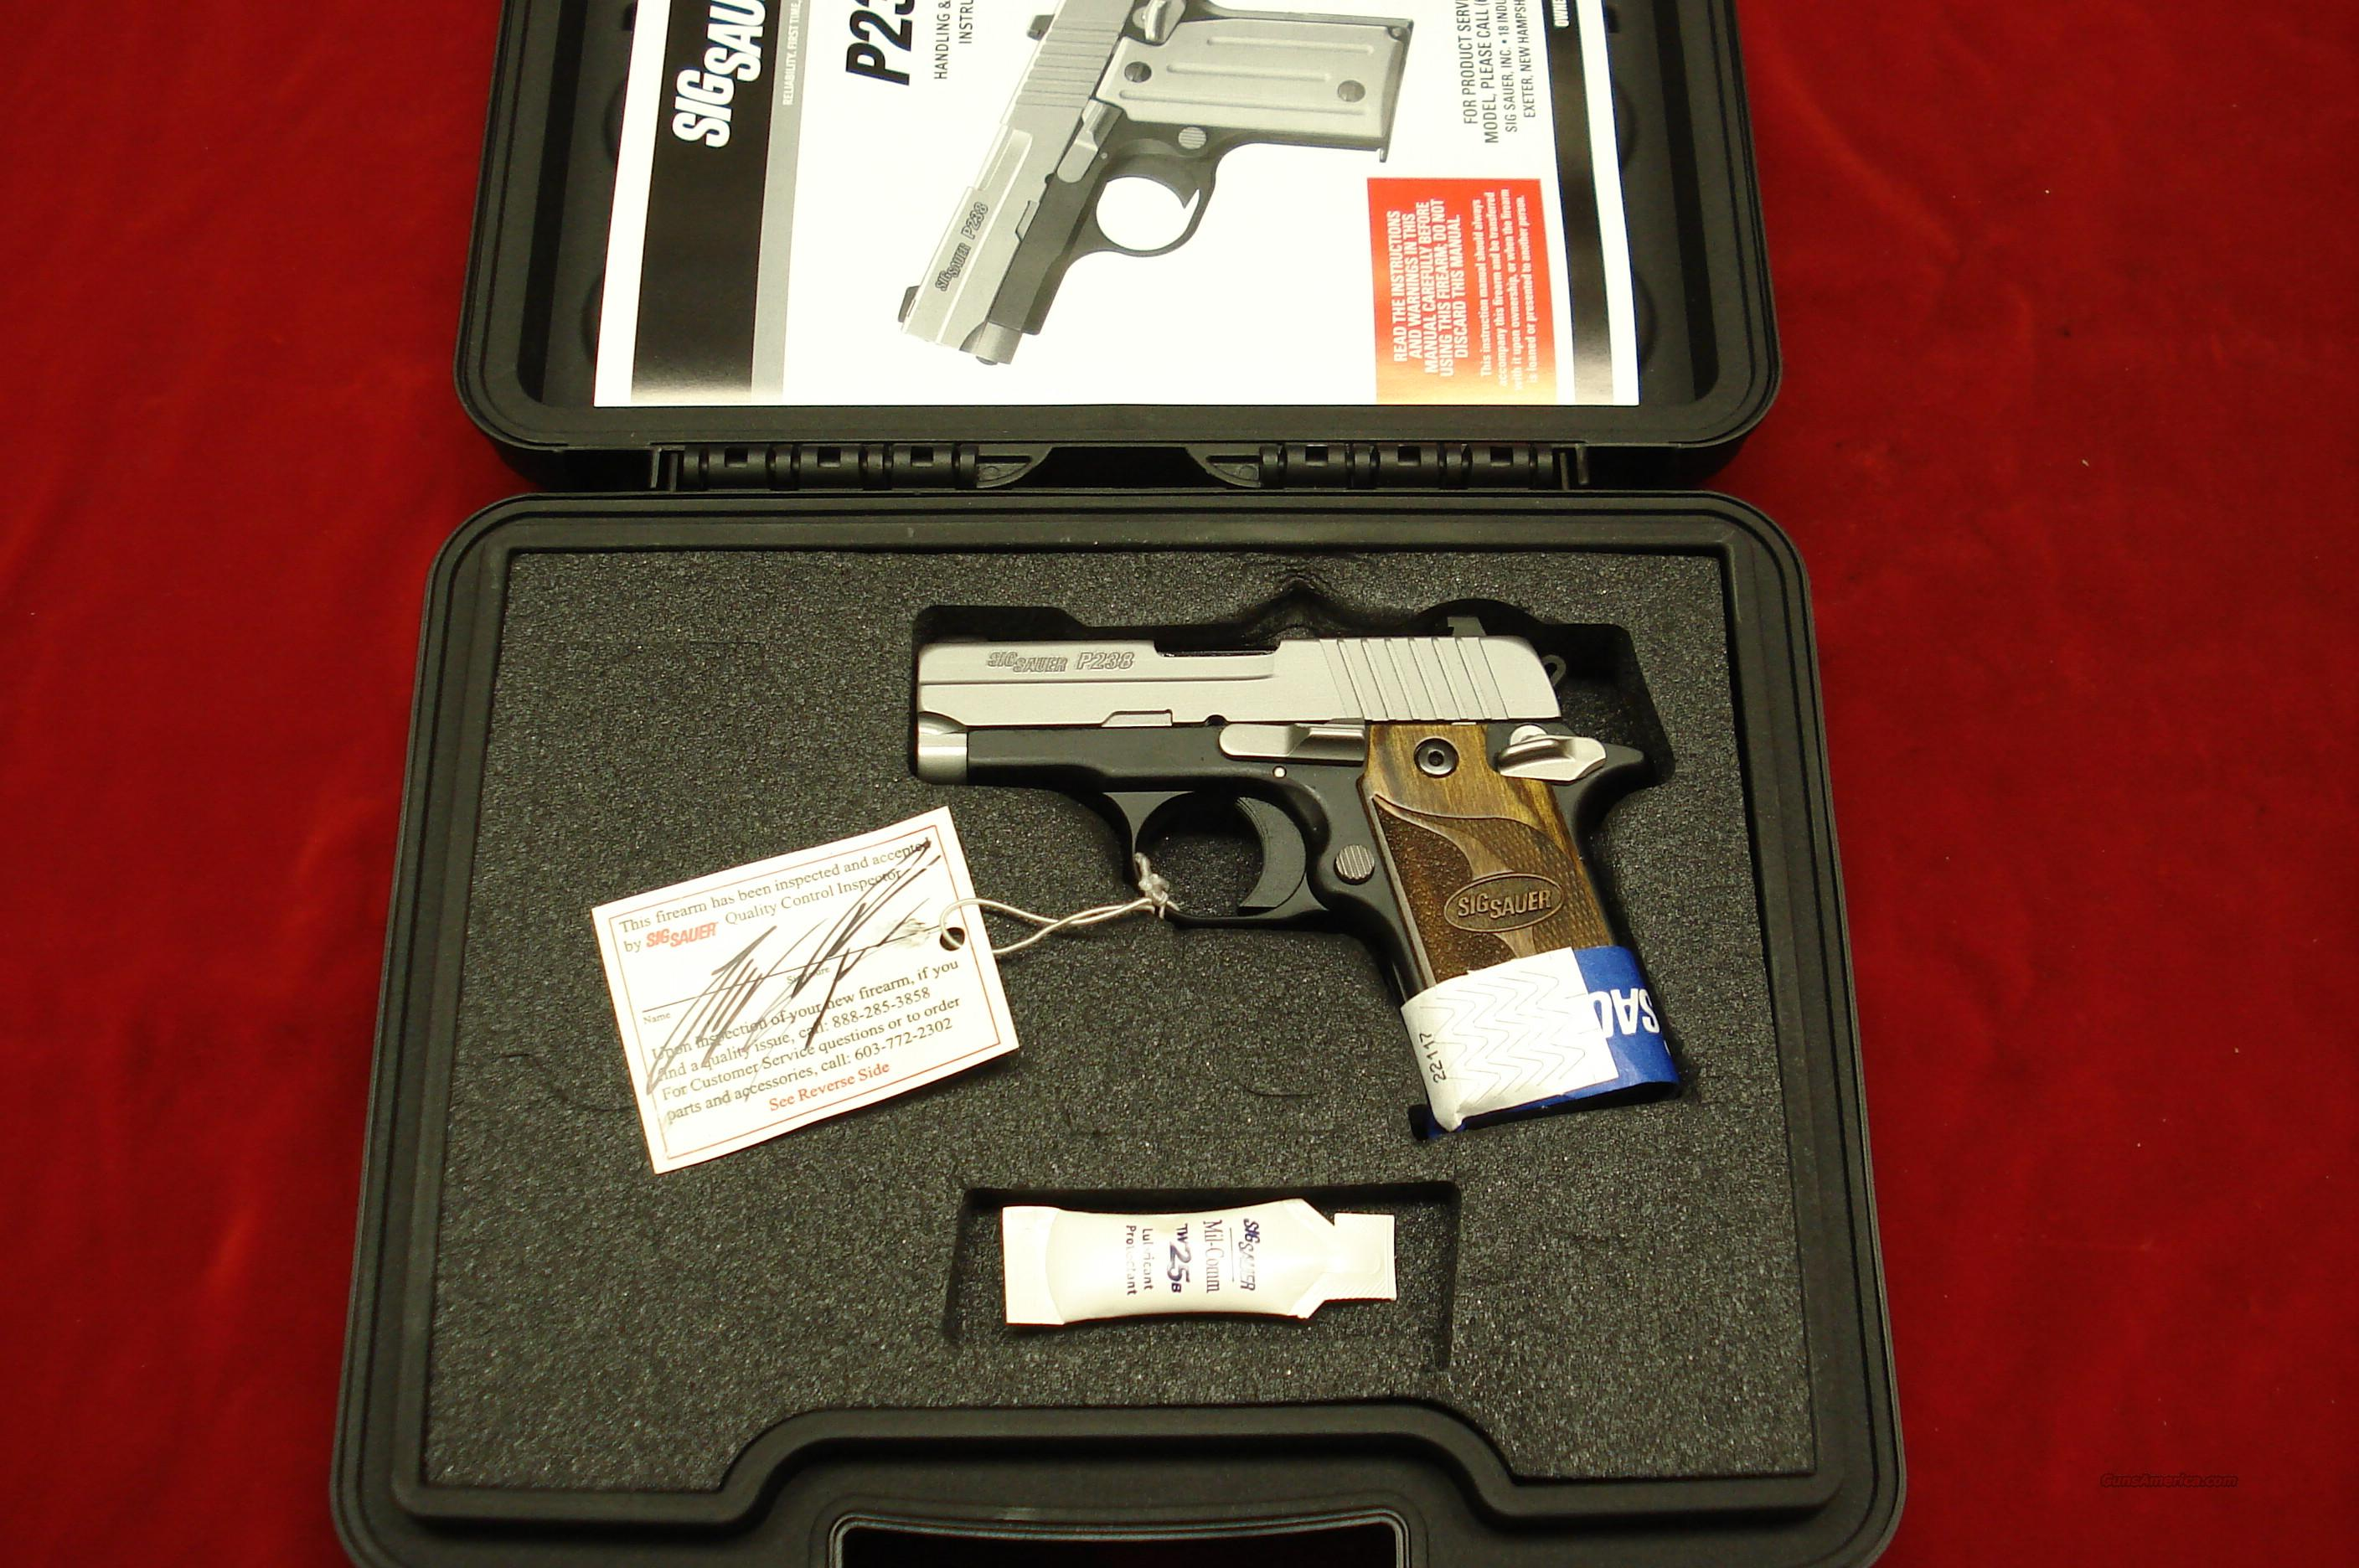 SIG SAUER P238 SAS STAINLESS DUO-TONE 380CAL. W/NIGHT SIGHTS NEW   (238-380-SAS)   Guns > Pistols > Sig - Sauer/Sigarms Pistols > Other